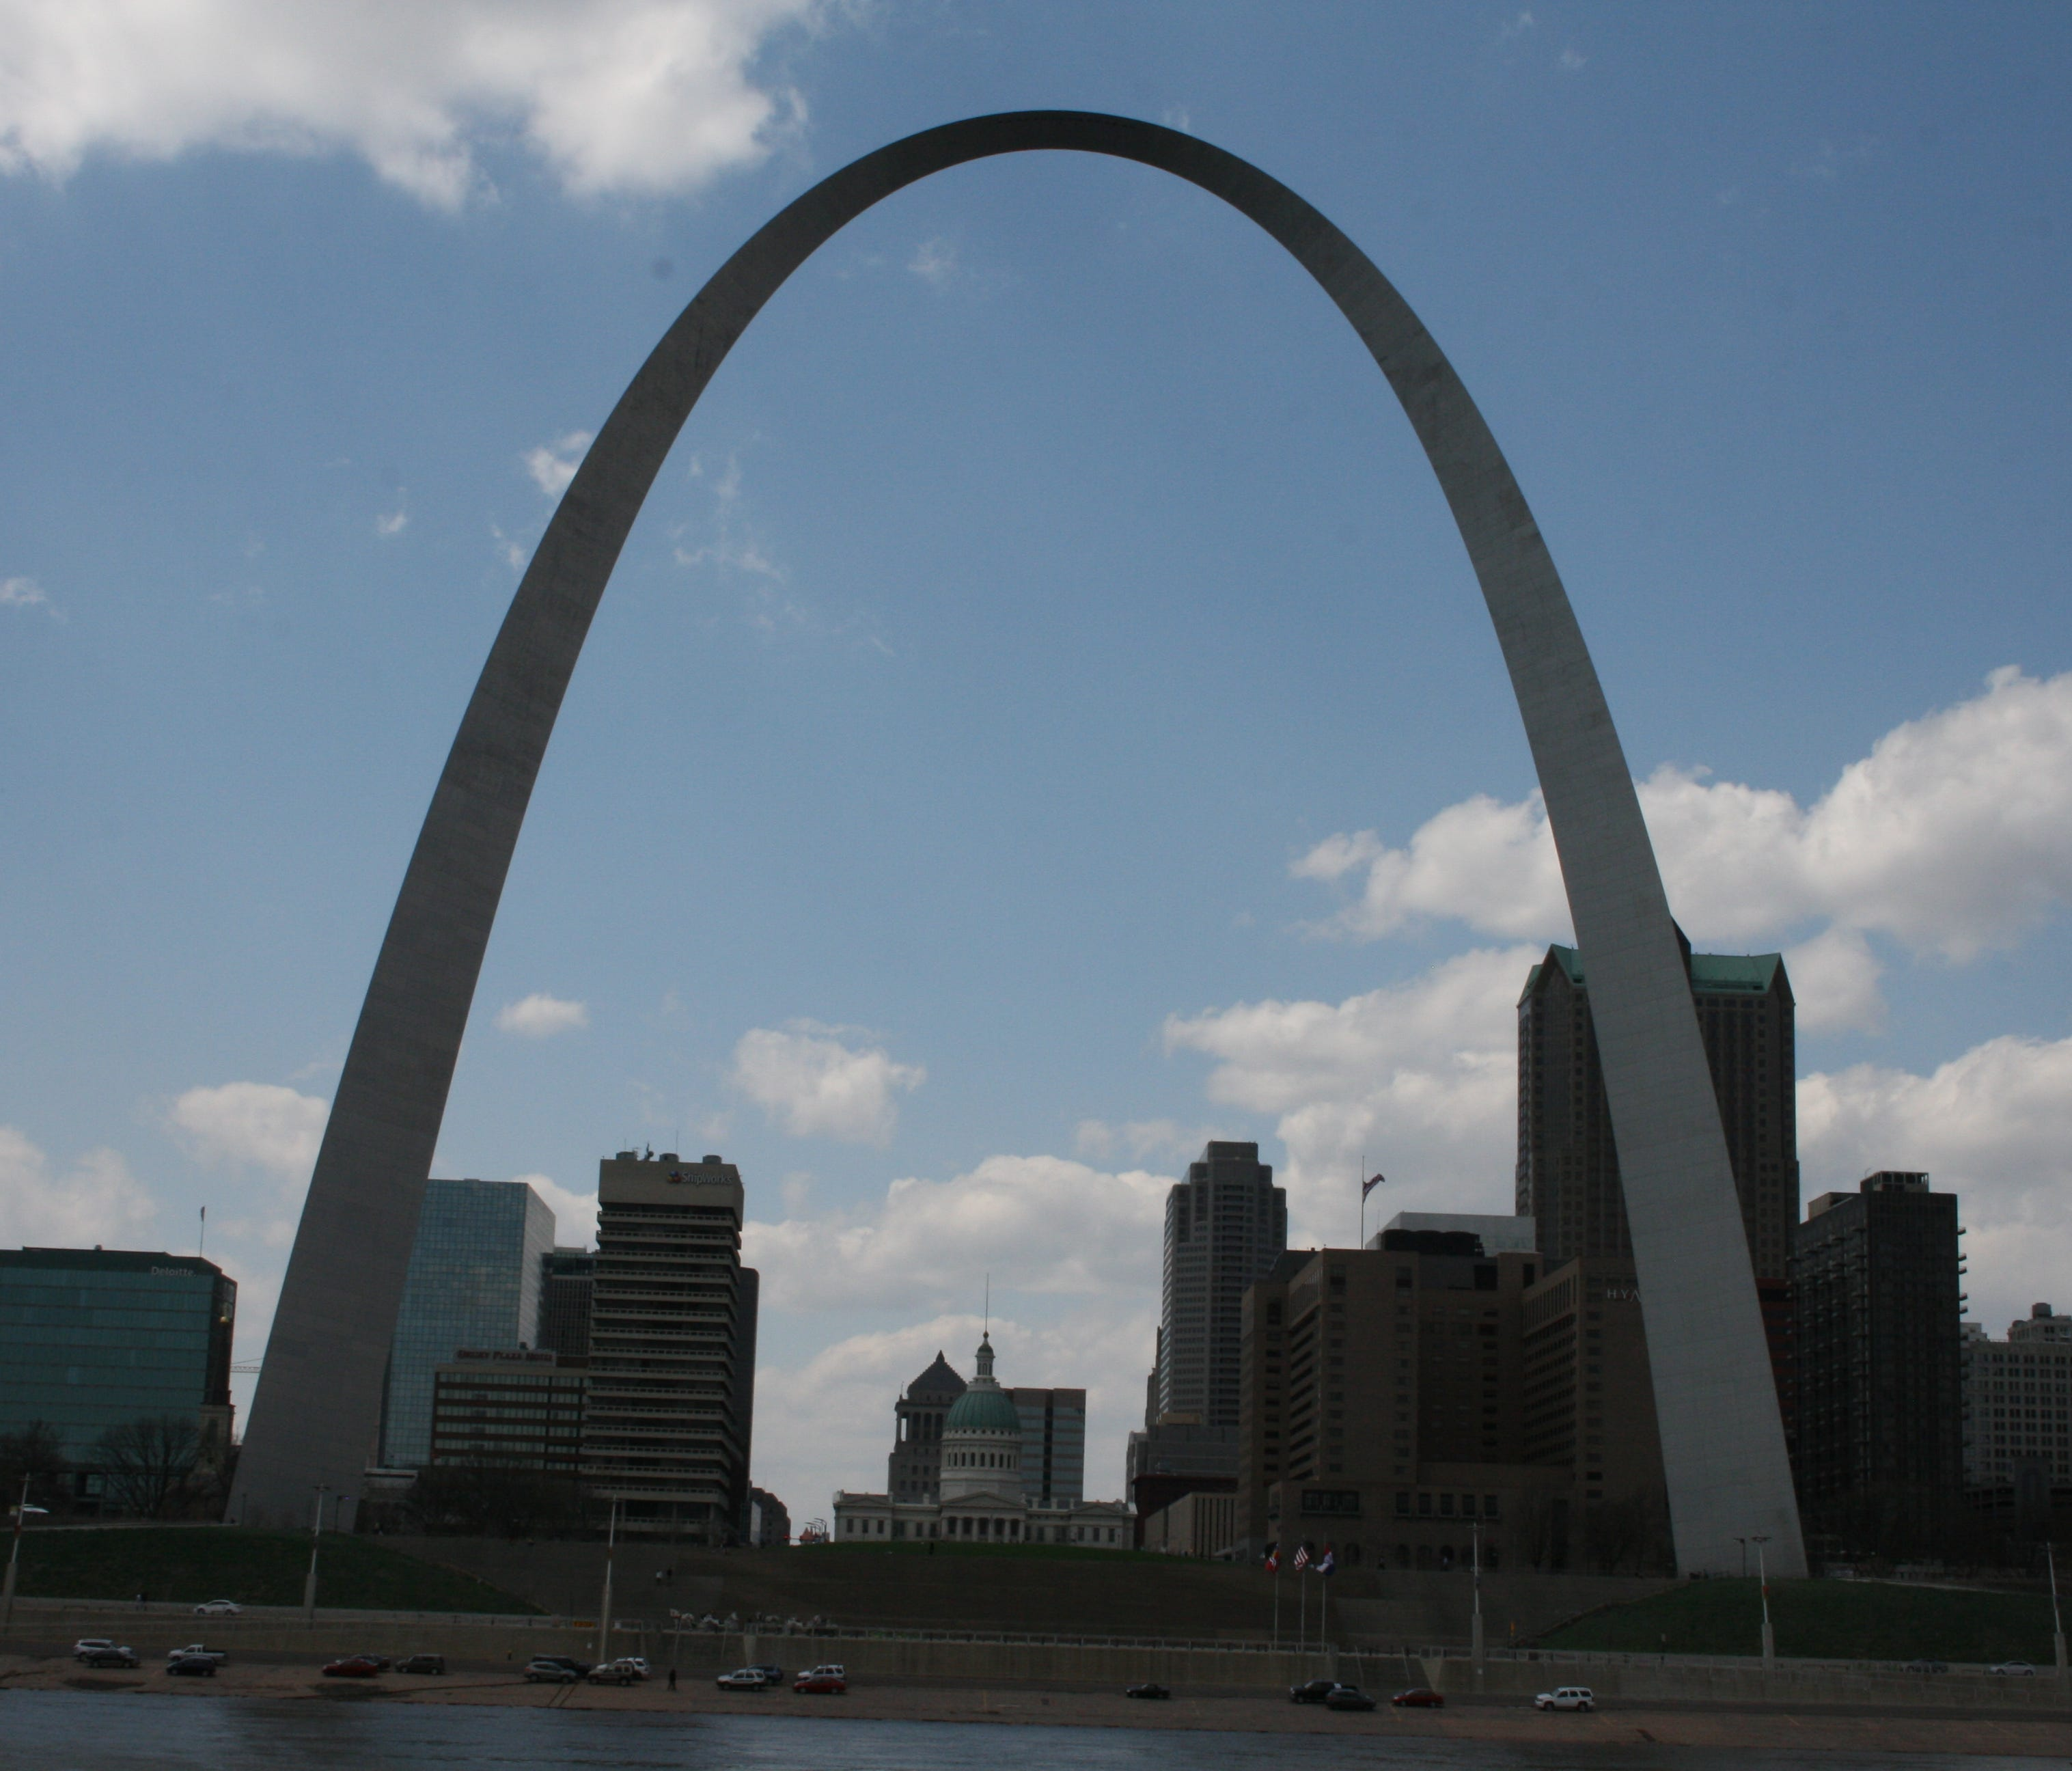 The Gateway Arch as seen from the Mississippi River.